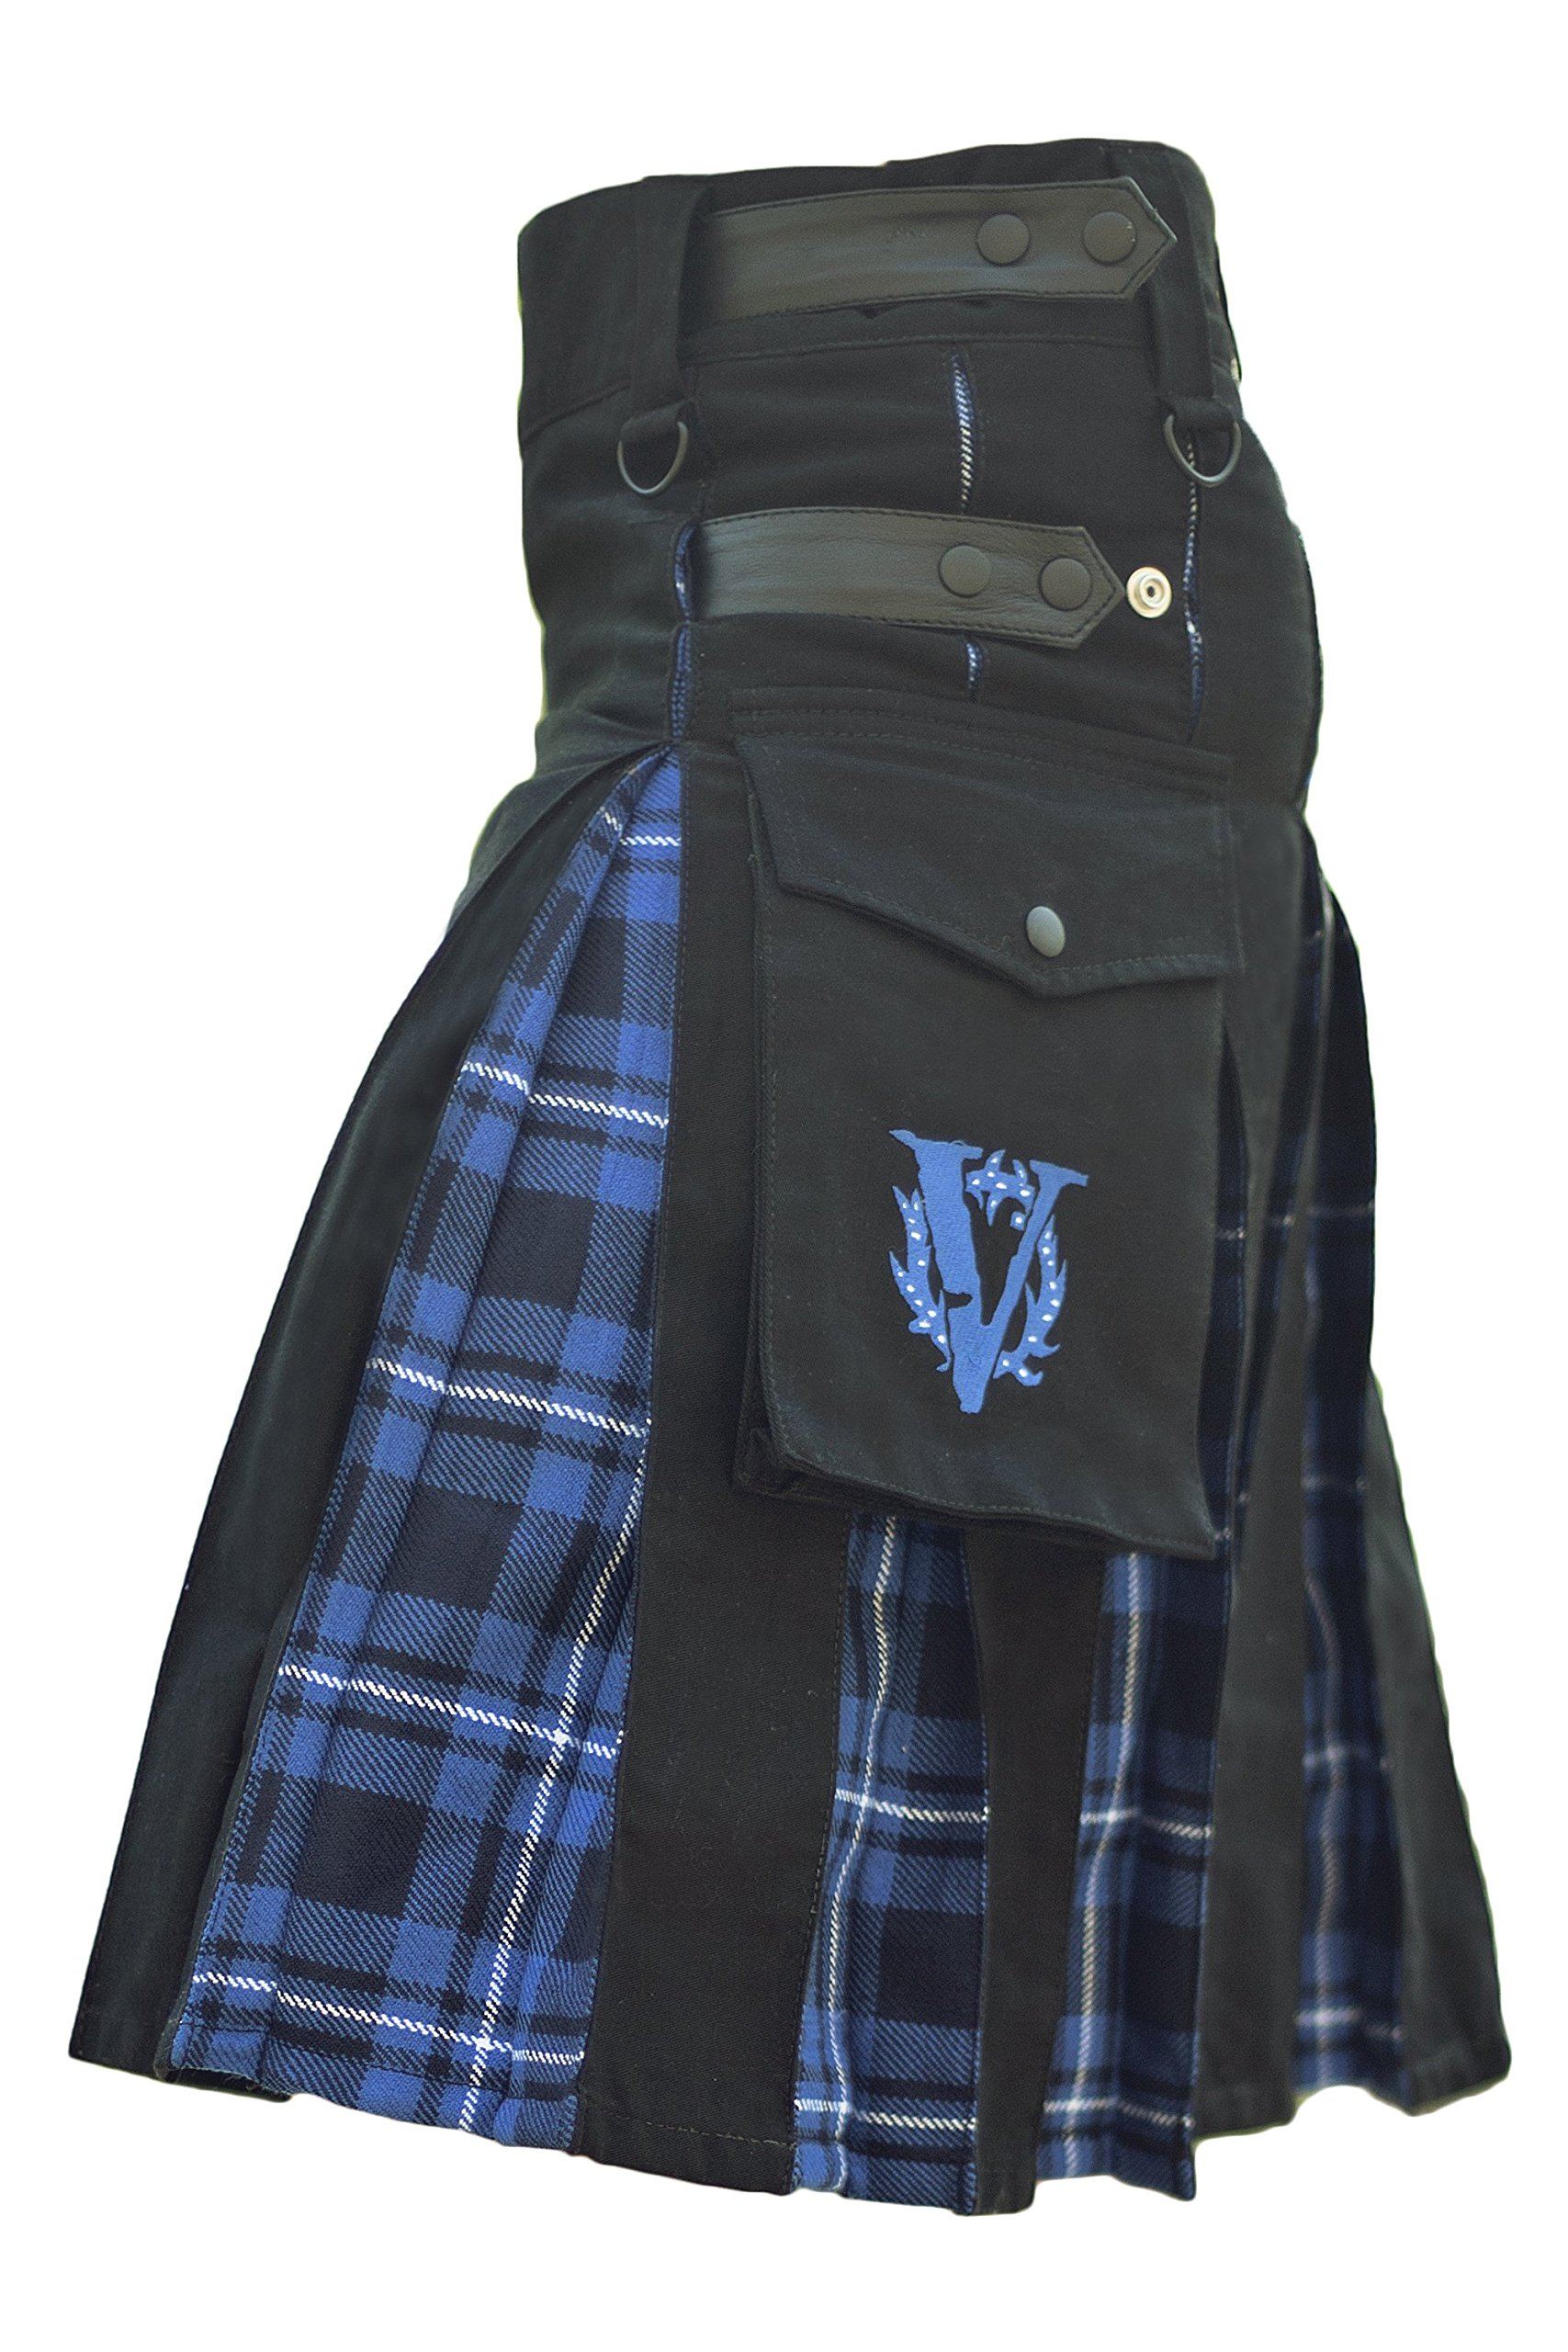 Verillas Men's Admiral Hybrid V-Kilt w/ Tartan Pleats 44 Black &Blue Plaid